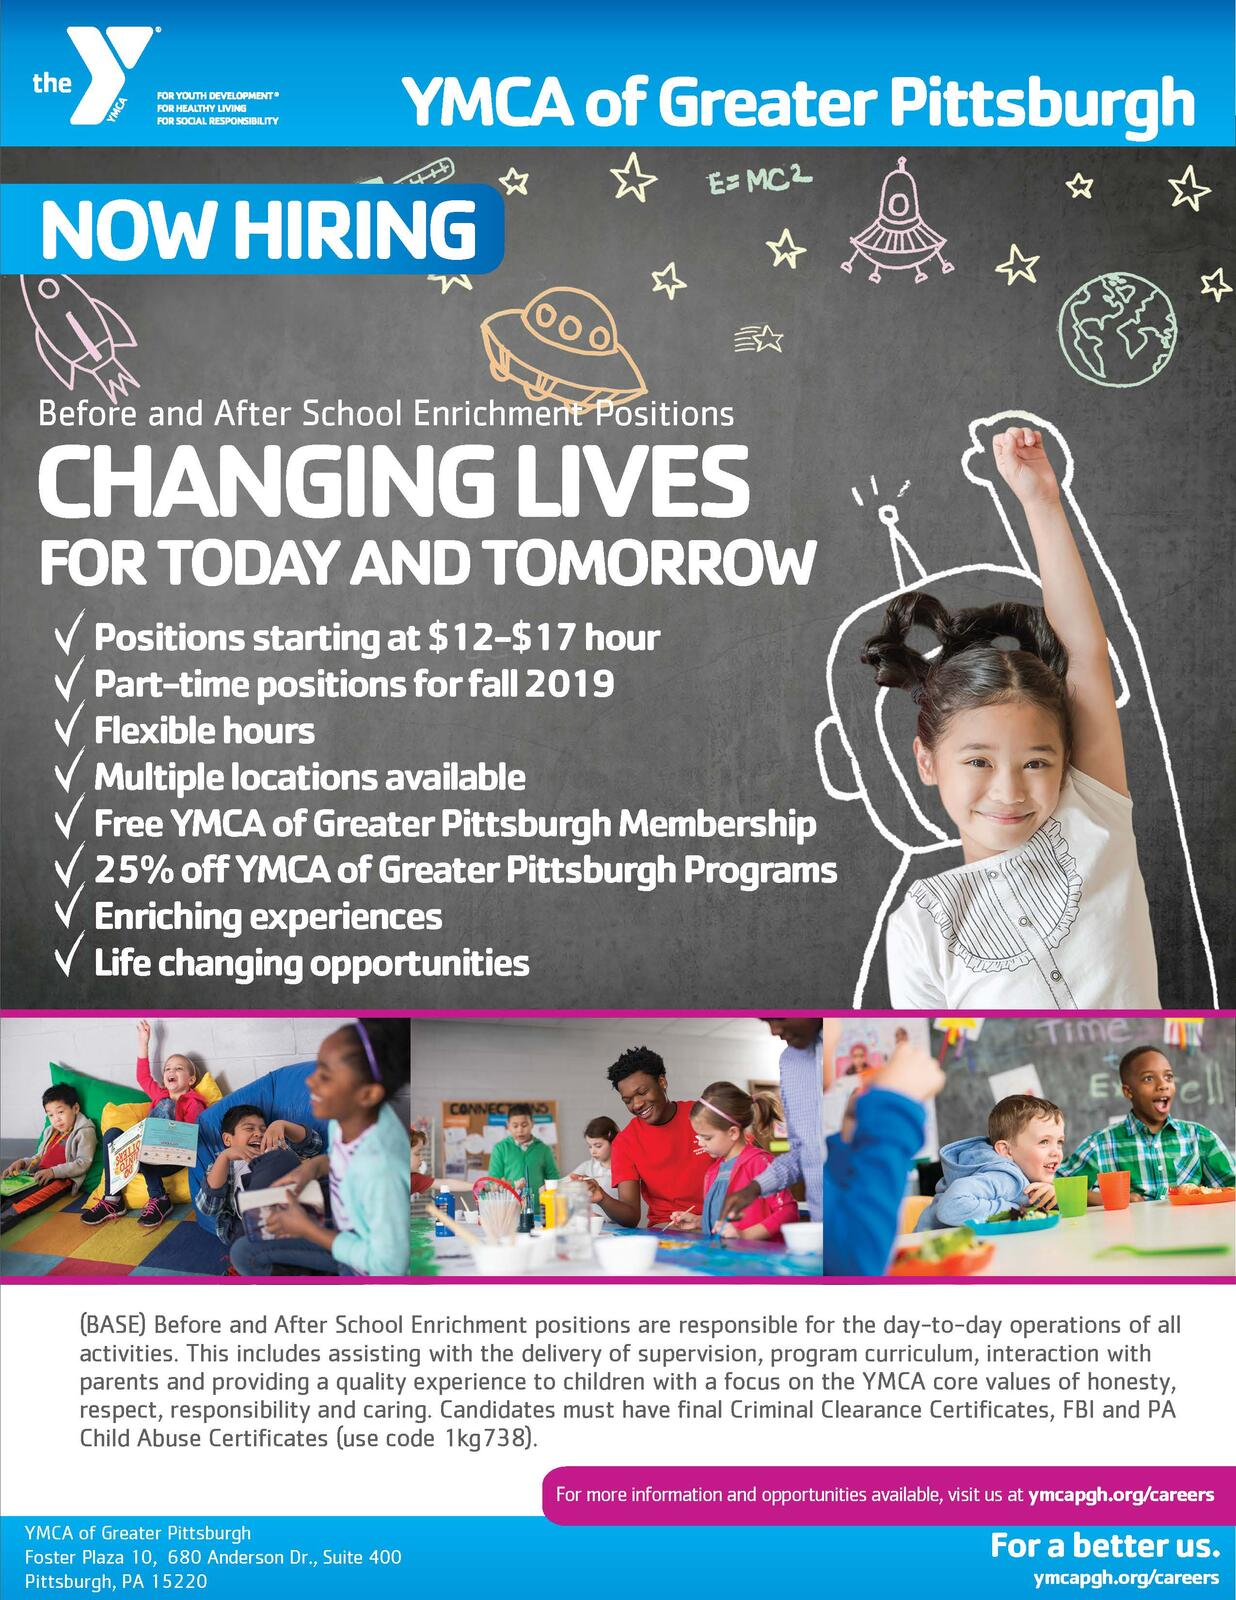 YMCA of Greater Pittsburgh Hiring - PT positions available